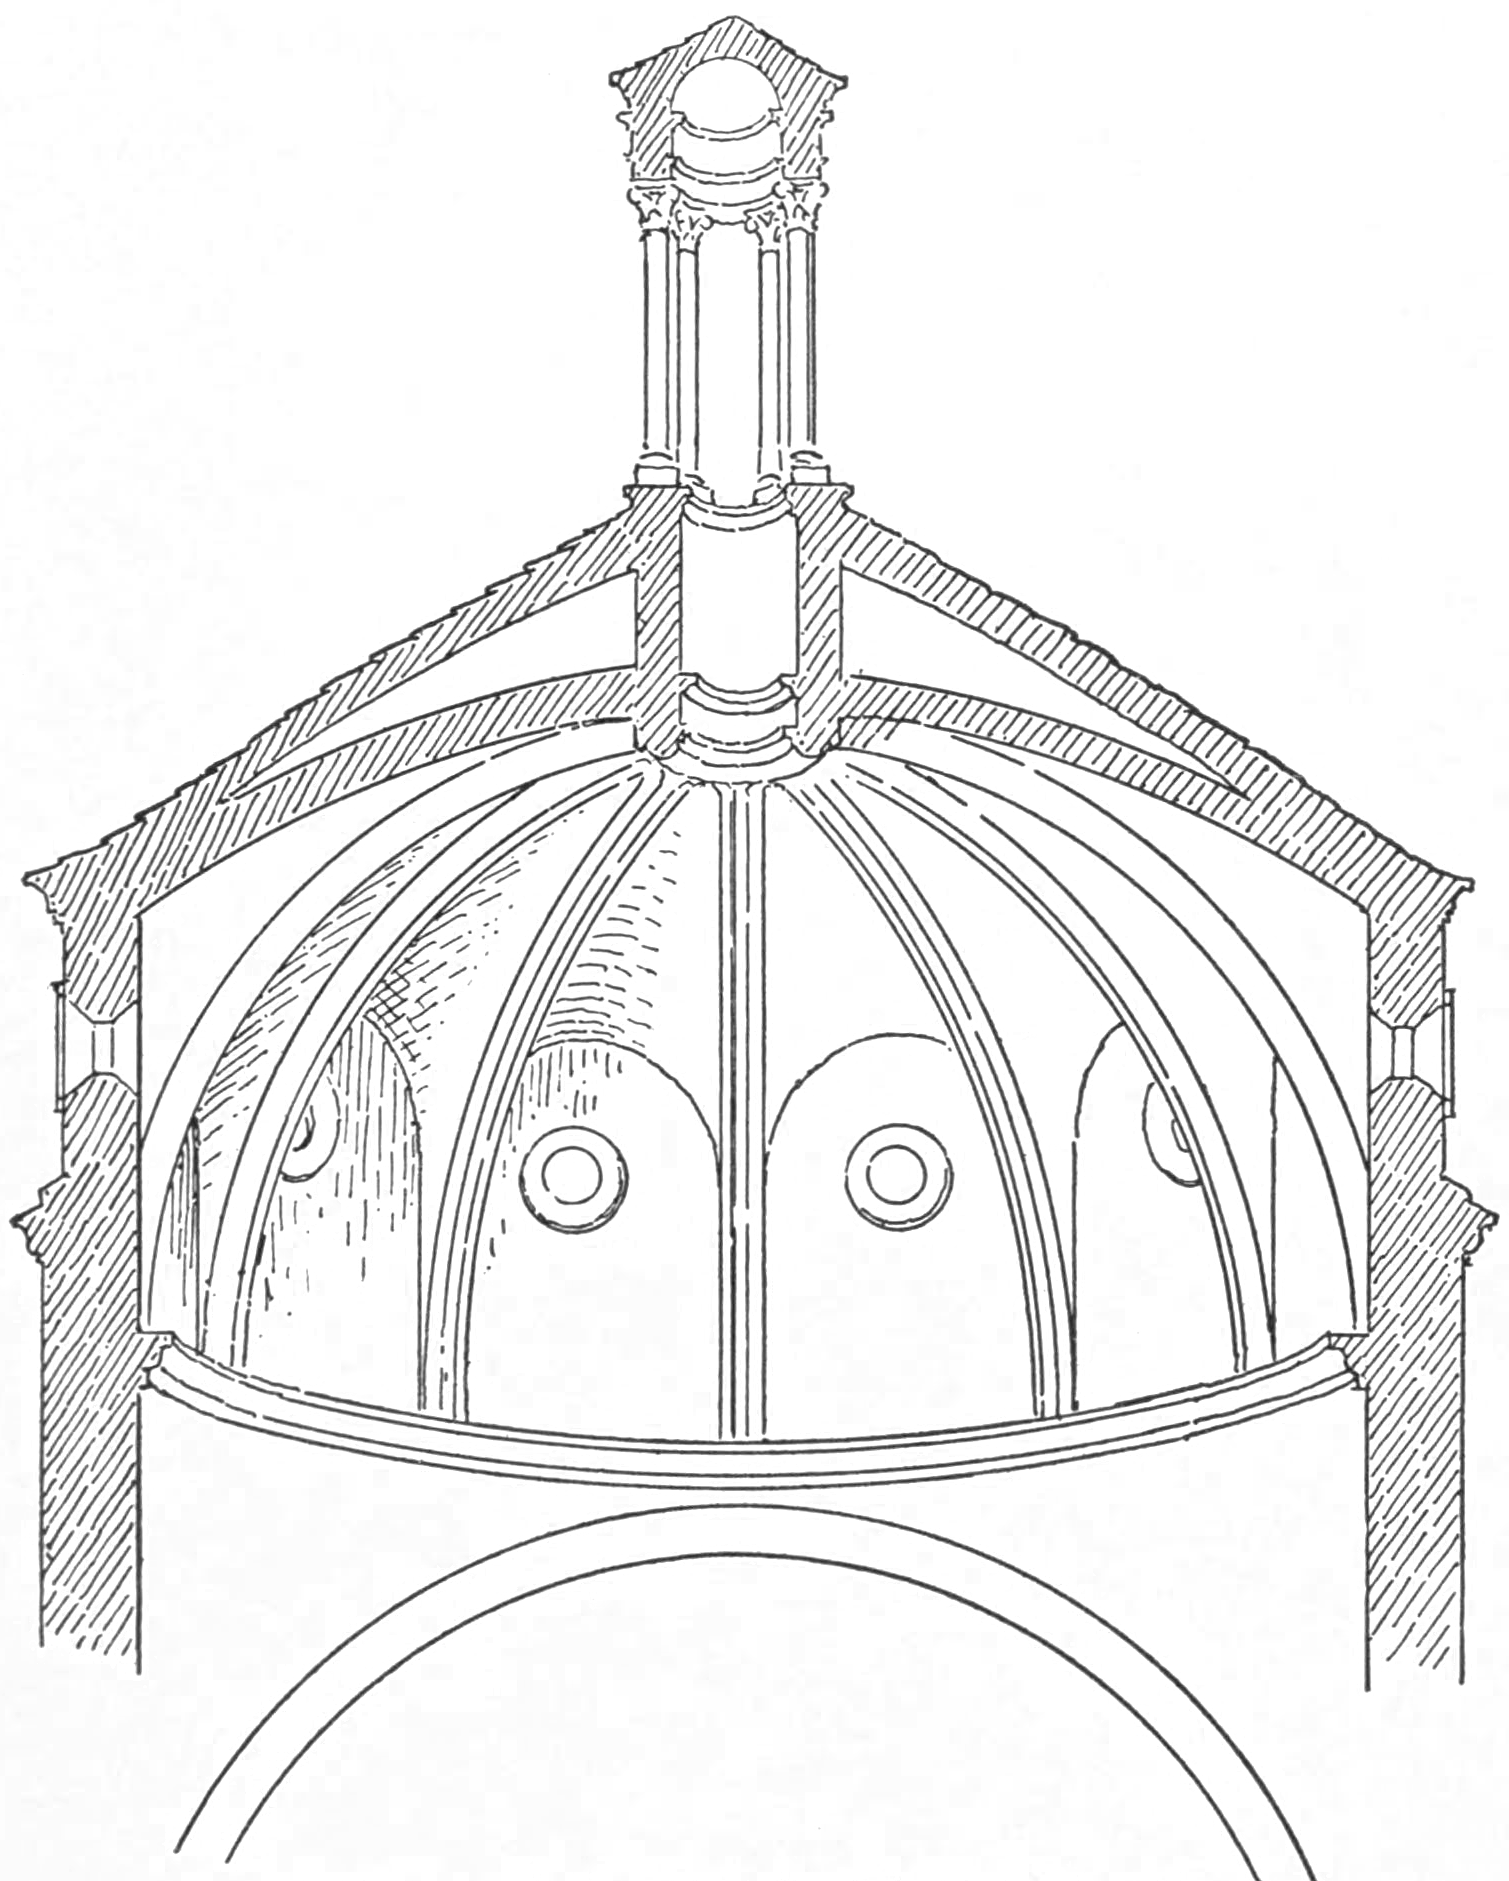 FileSection Of Vault The Pazzi Chapel Character Renaissance Architecture